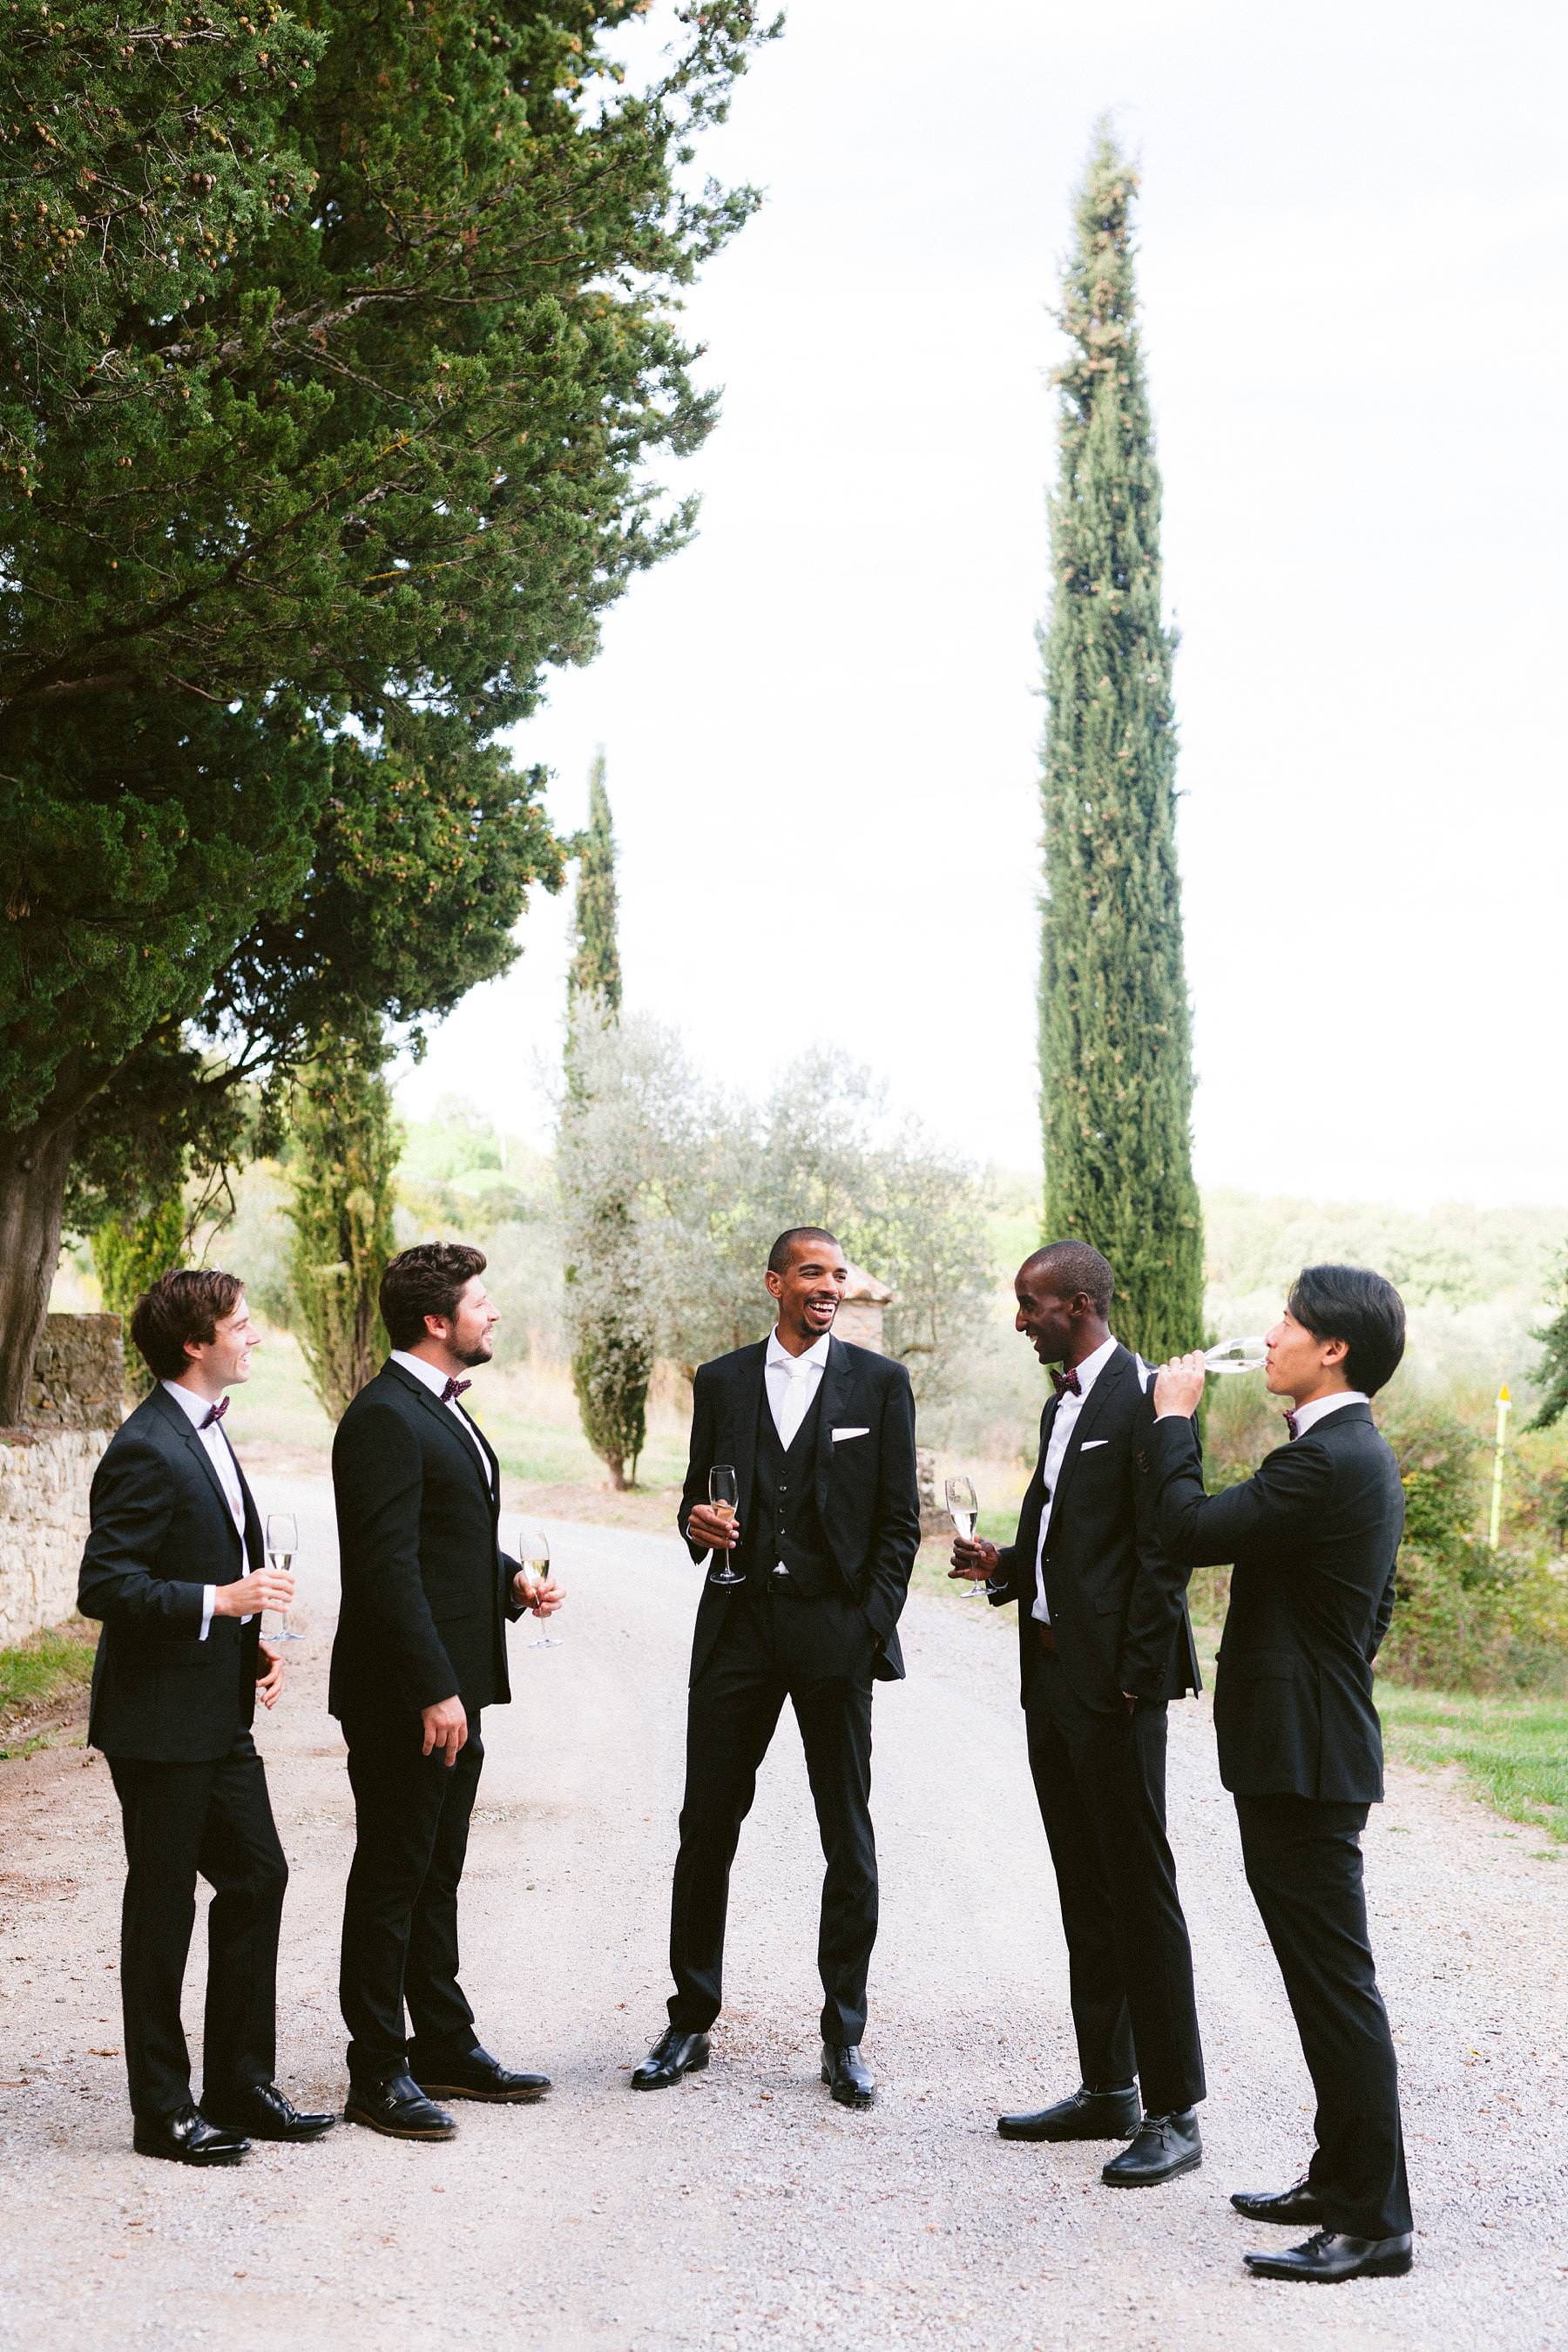 Groom Tanaka with groomsmen wait to walk down the aisle for the symbolic wedding ceremony at charming Montelucci Country Resort historic residence between Chianti and Valdarno framed by the picturesque cypress lane and vineyard